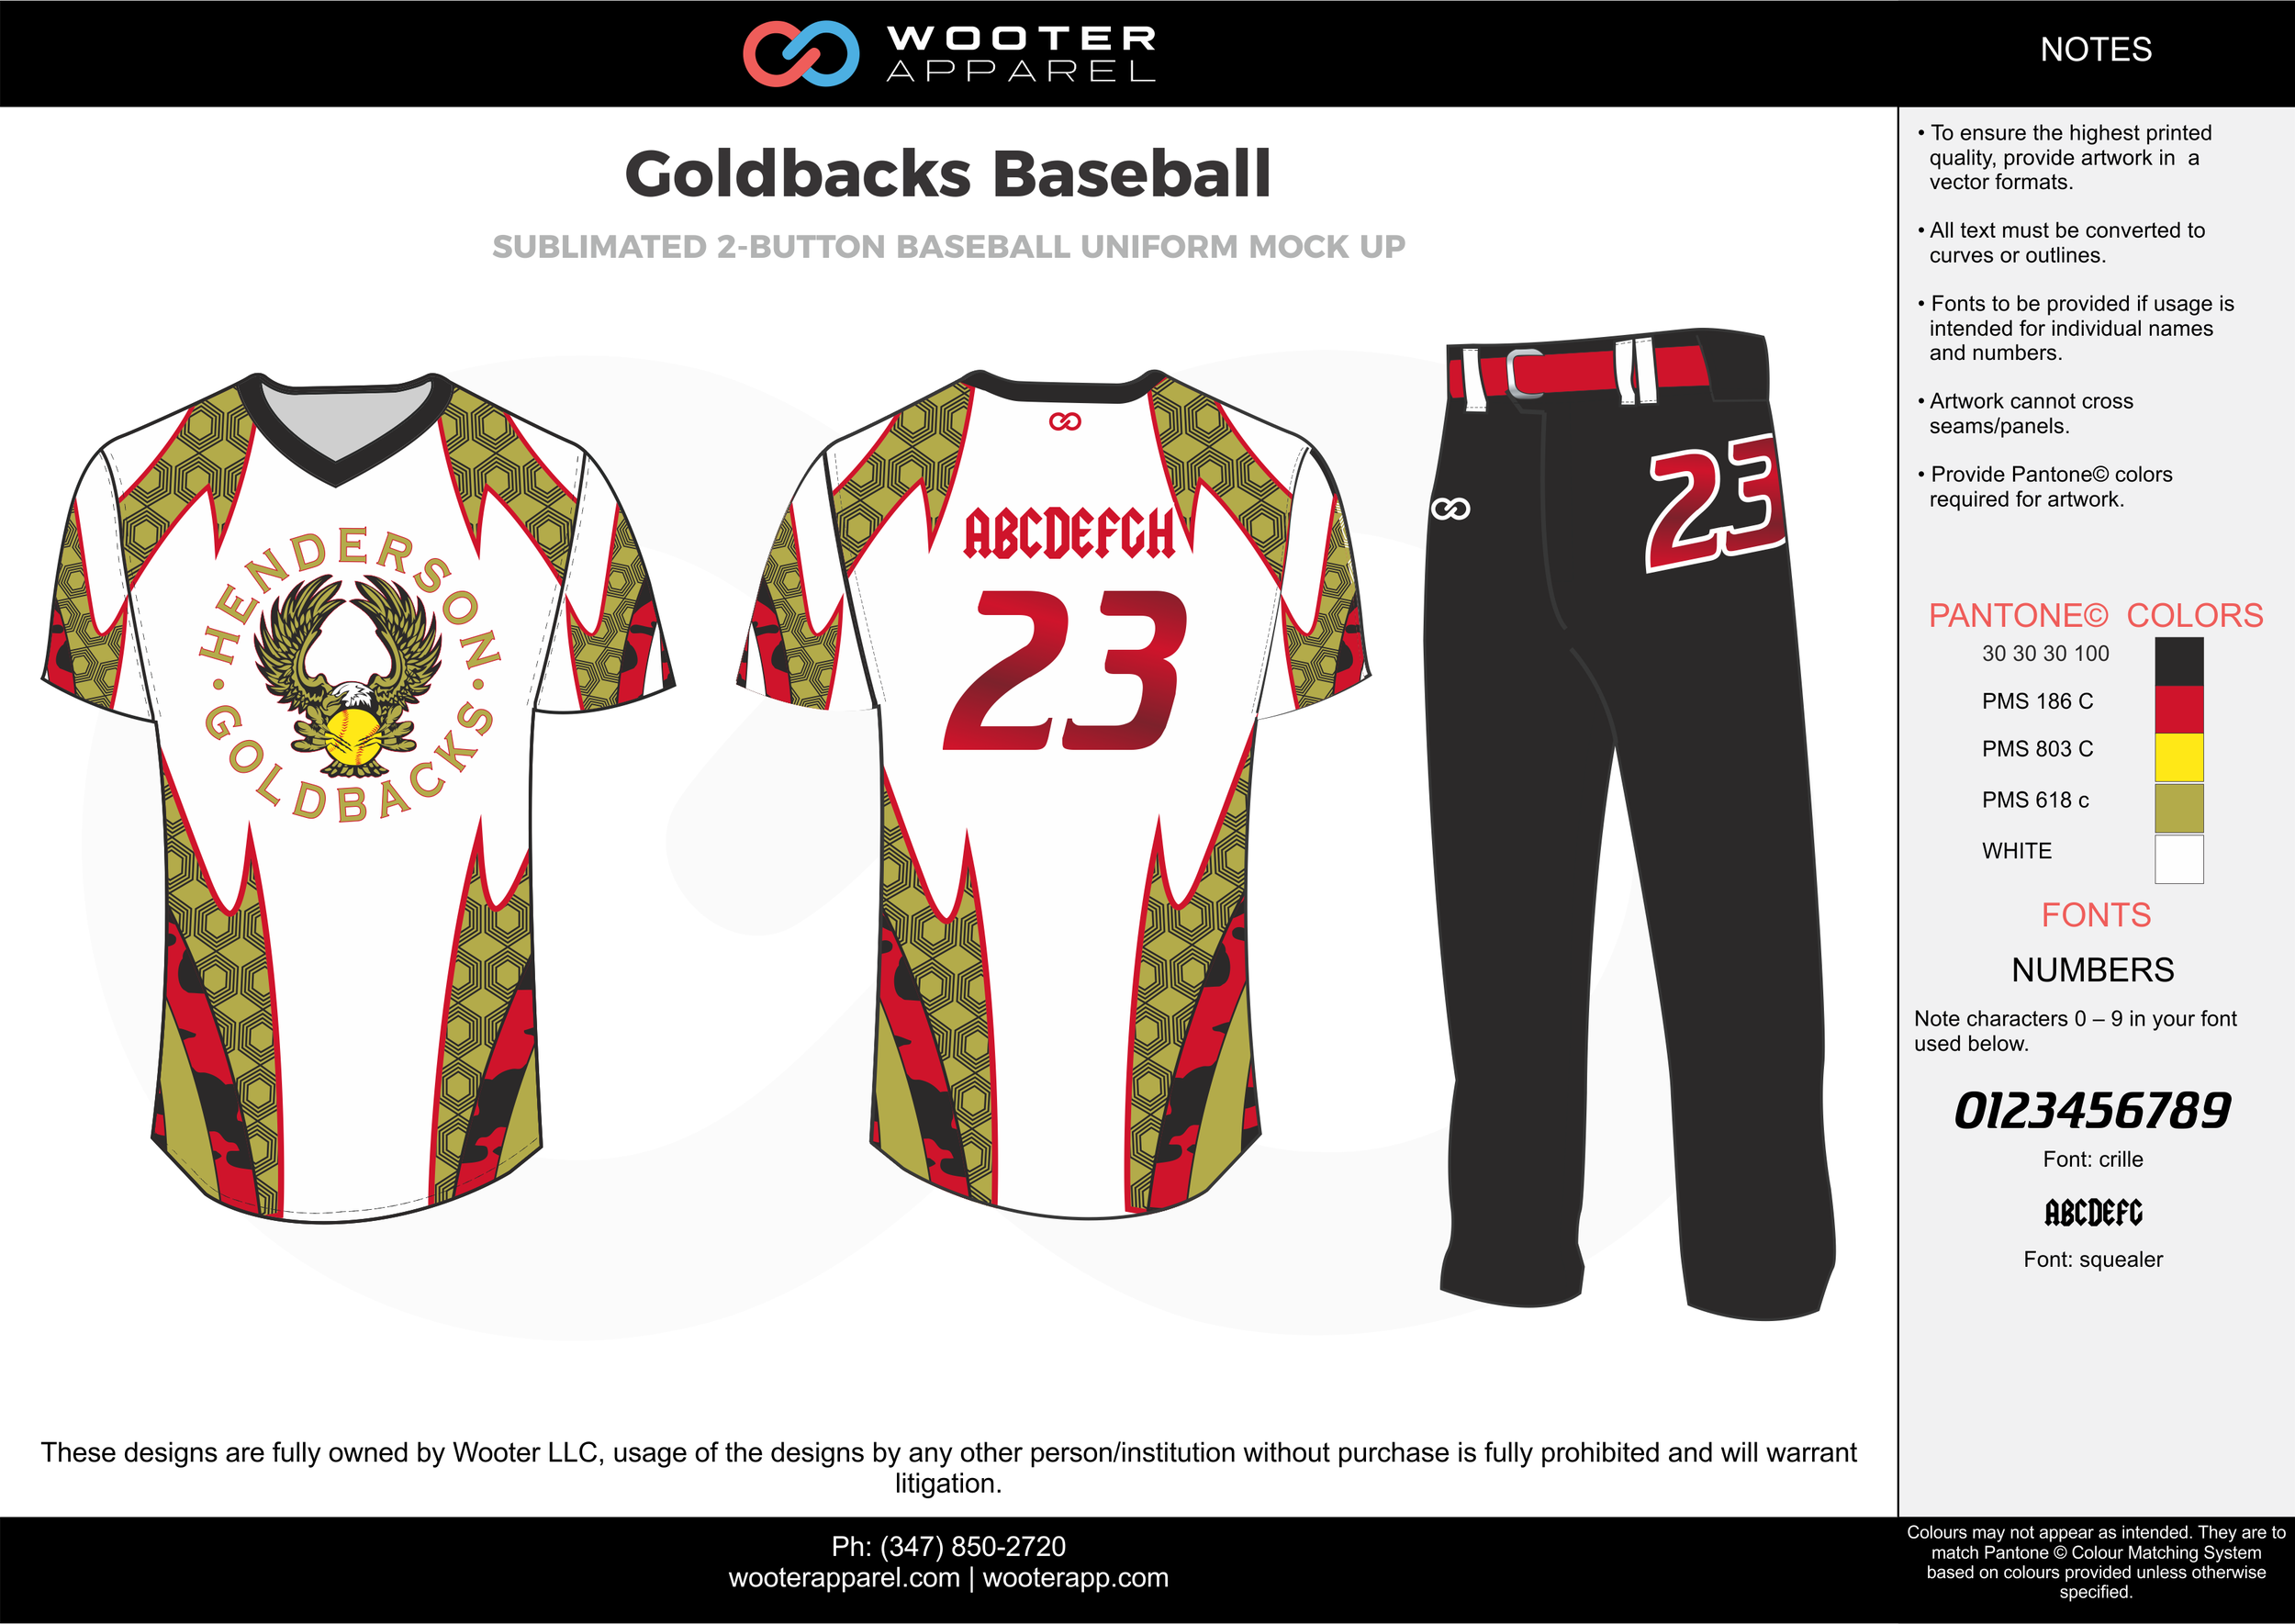 GOLDBACKS BASEBALL red black white yellow gold baseball uniforms jerseys pants